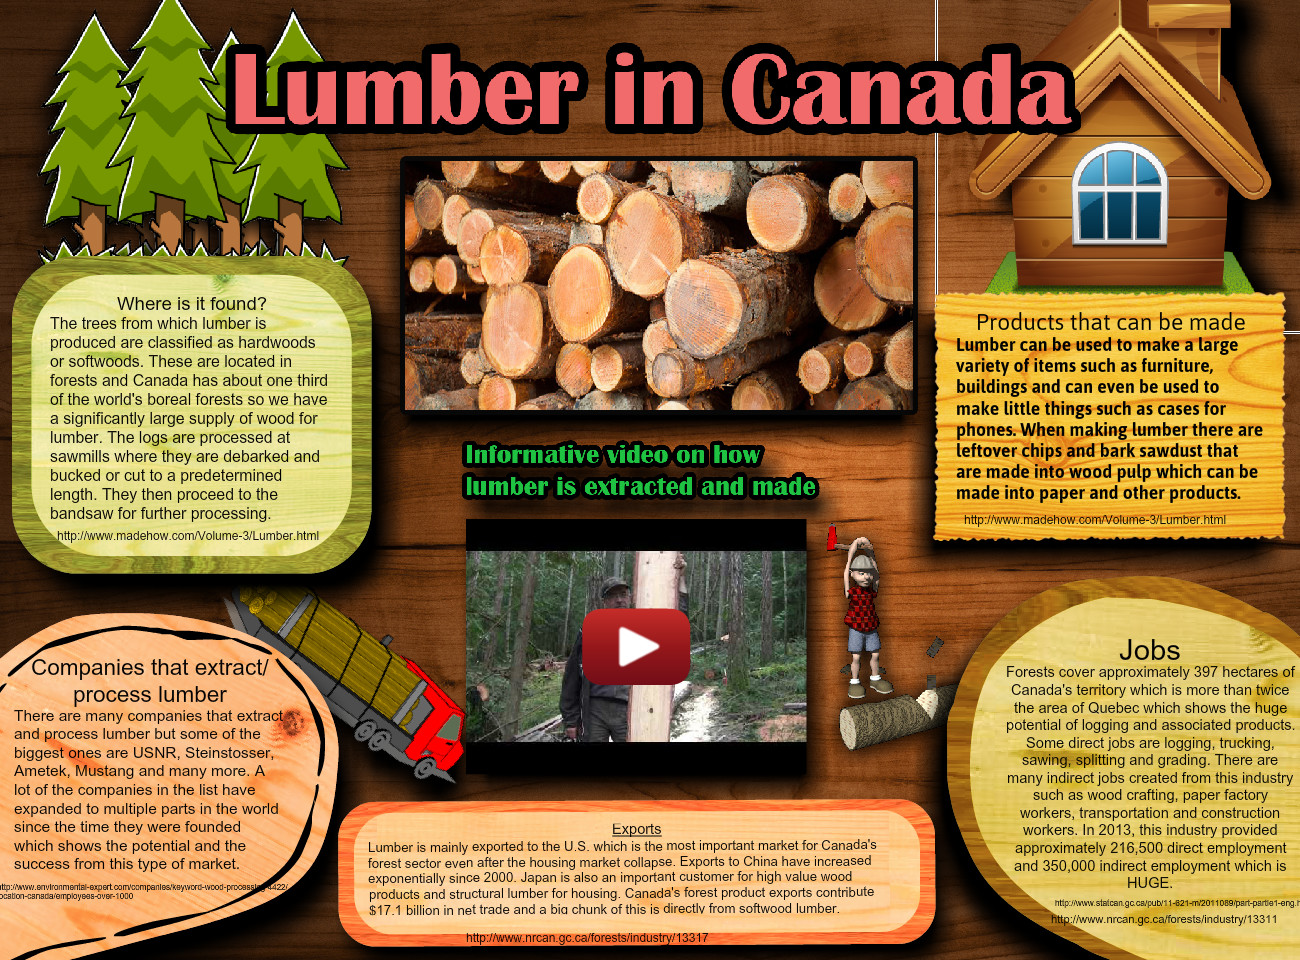 LUMBER IN CANADA